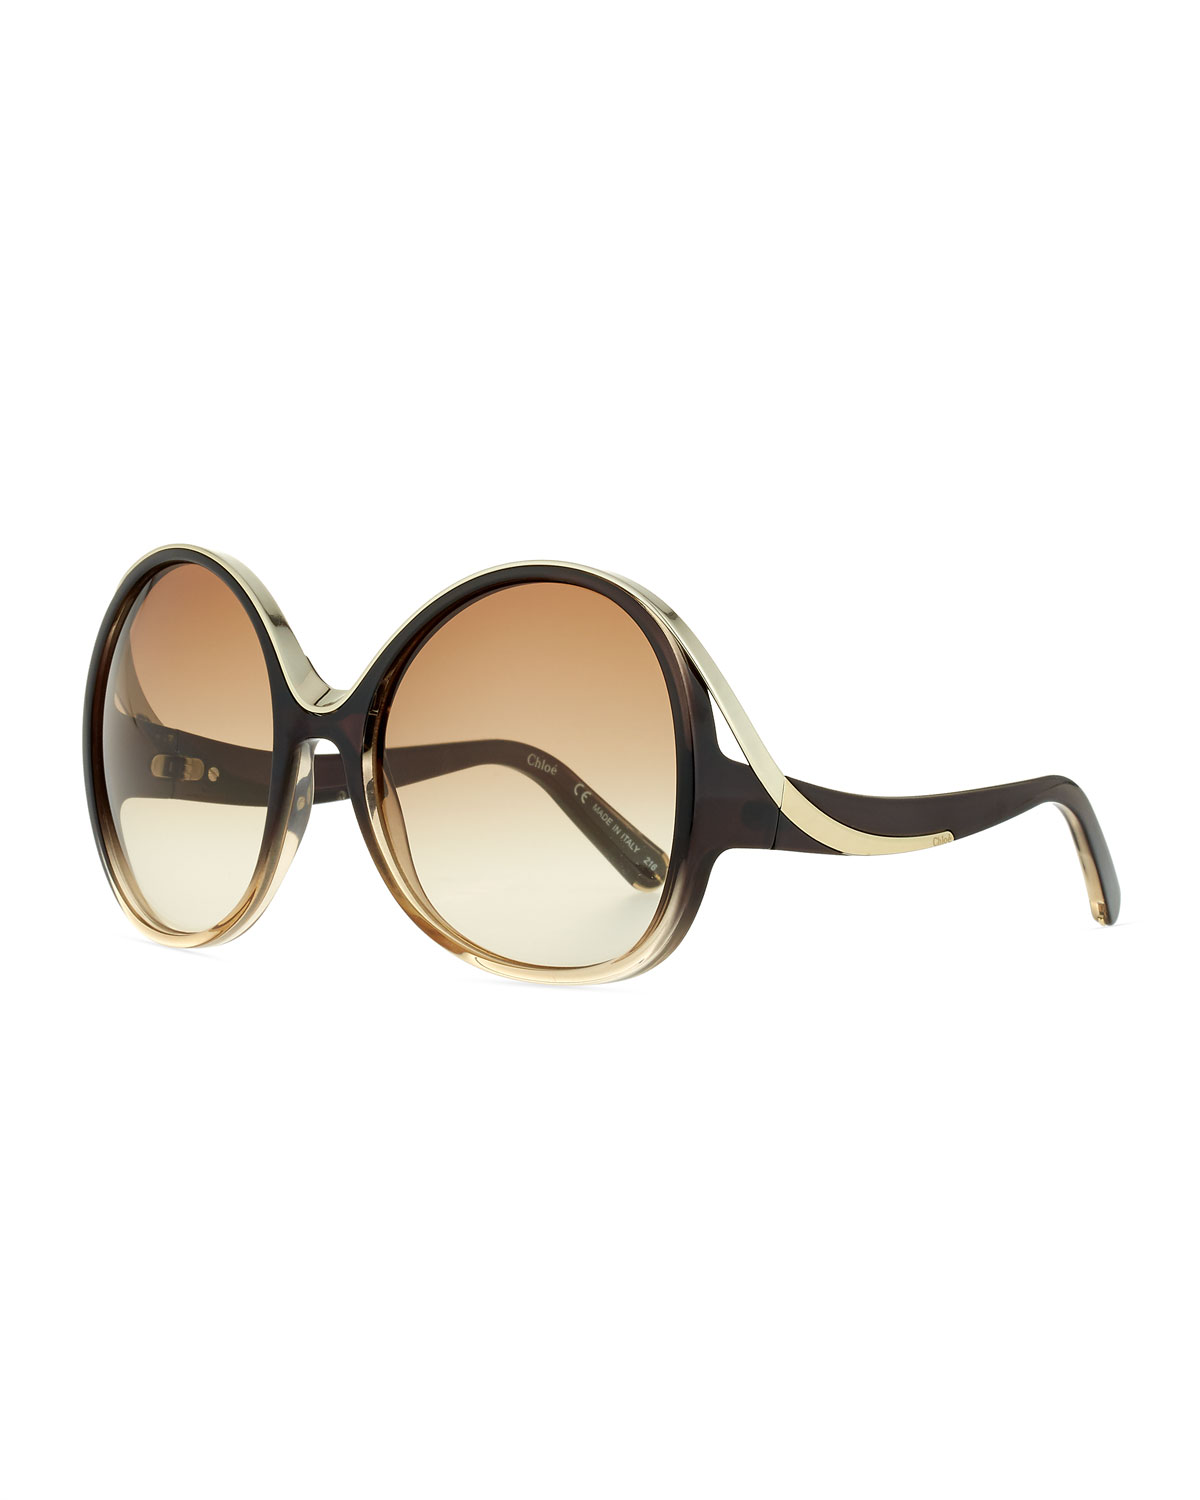 9f224b31198 Chloe Mandy Oval Acetate Sunglasses